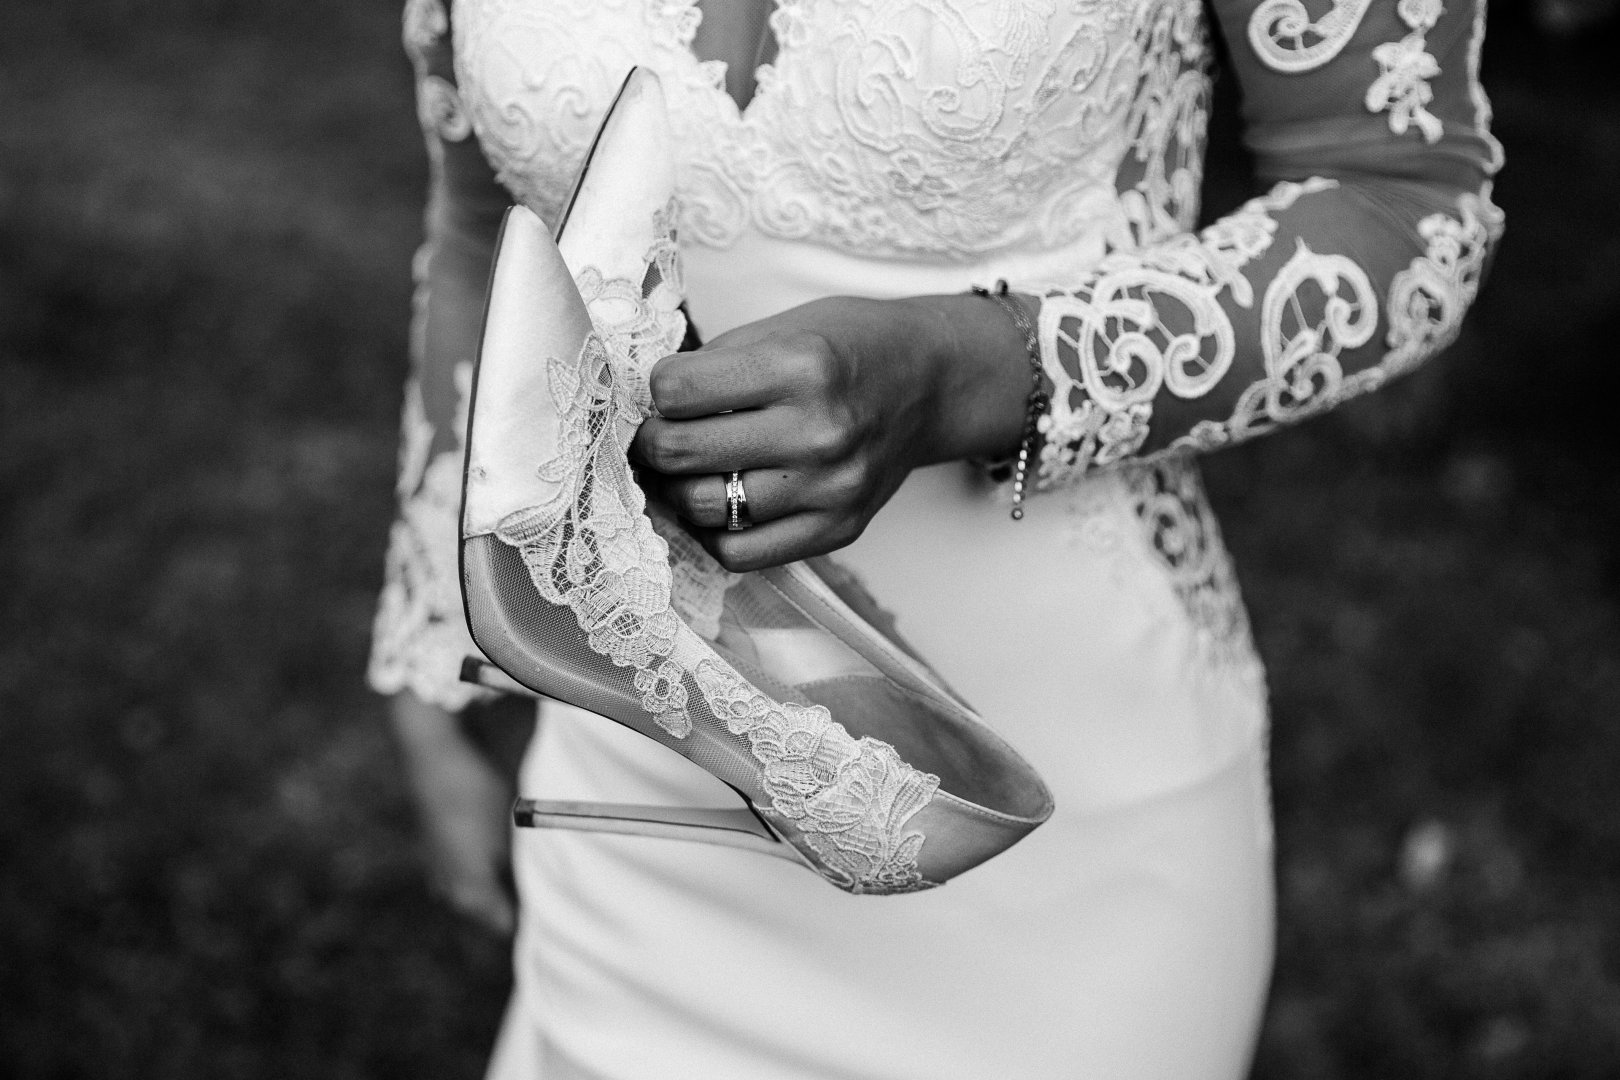 Photograph White Black-and-white Monochrome photography Wedding dress Hand Bride Dress Arm Photography Wedding Ceremony Monochrome Bridal clothing Elbow Finger Gesture Lace Style Wrist Fashion accessory Groom Street fashion Shoe Temporary tattoo Sleeve Marriage